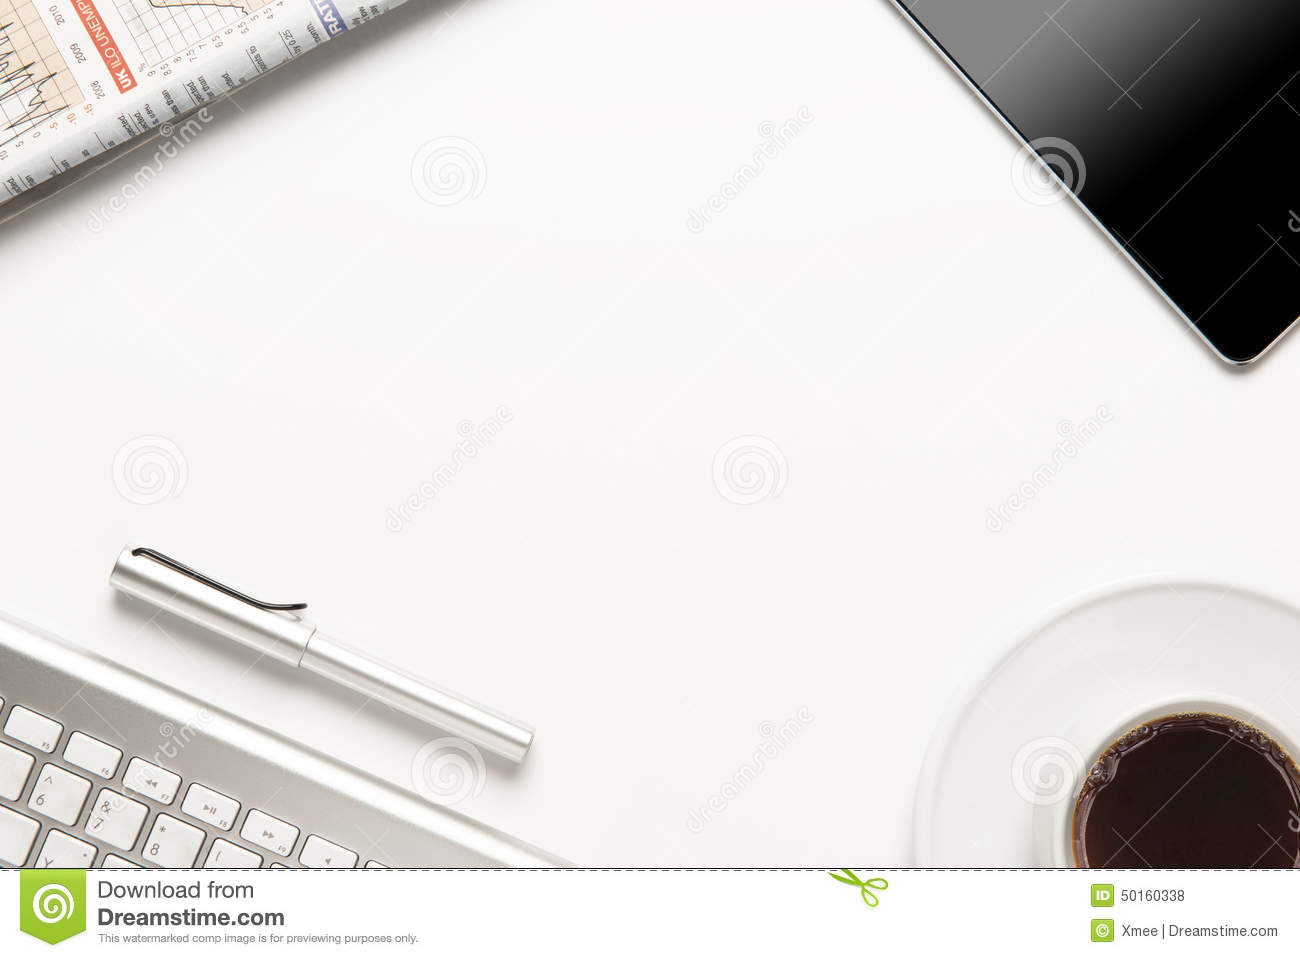 Working On Table With Office Supplies Stock Photo - Image ...